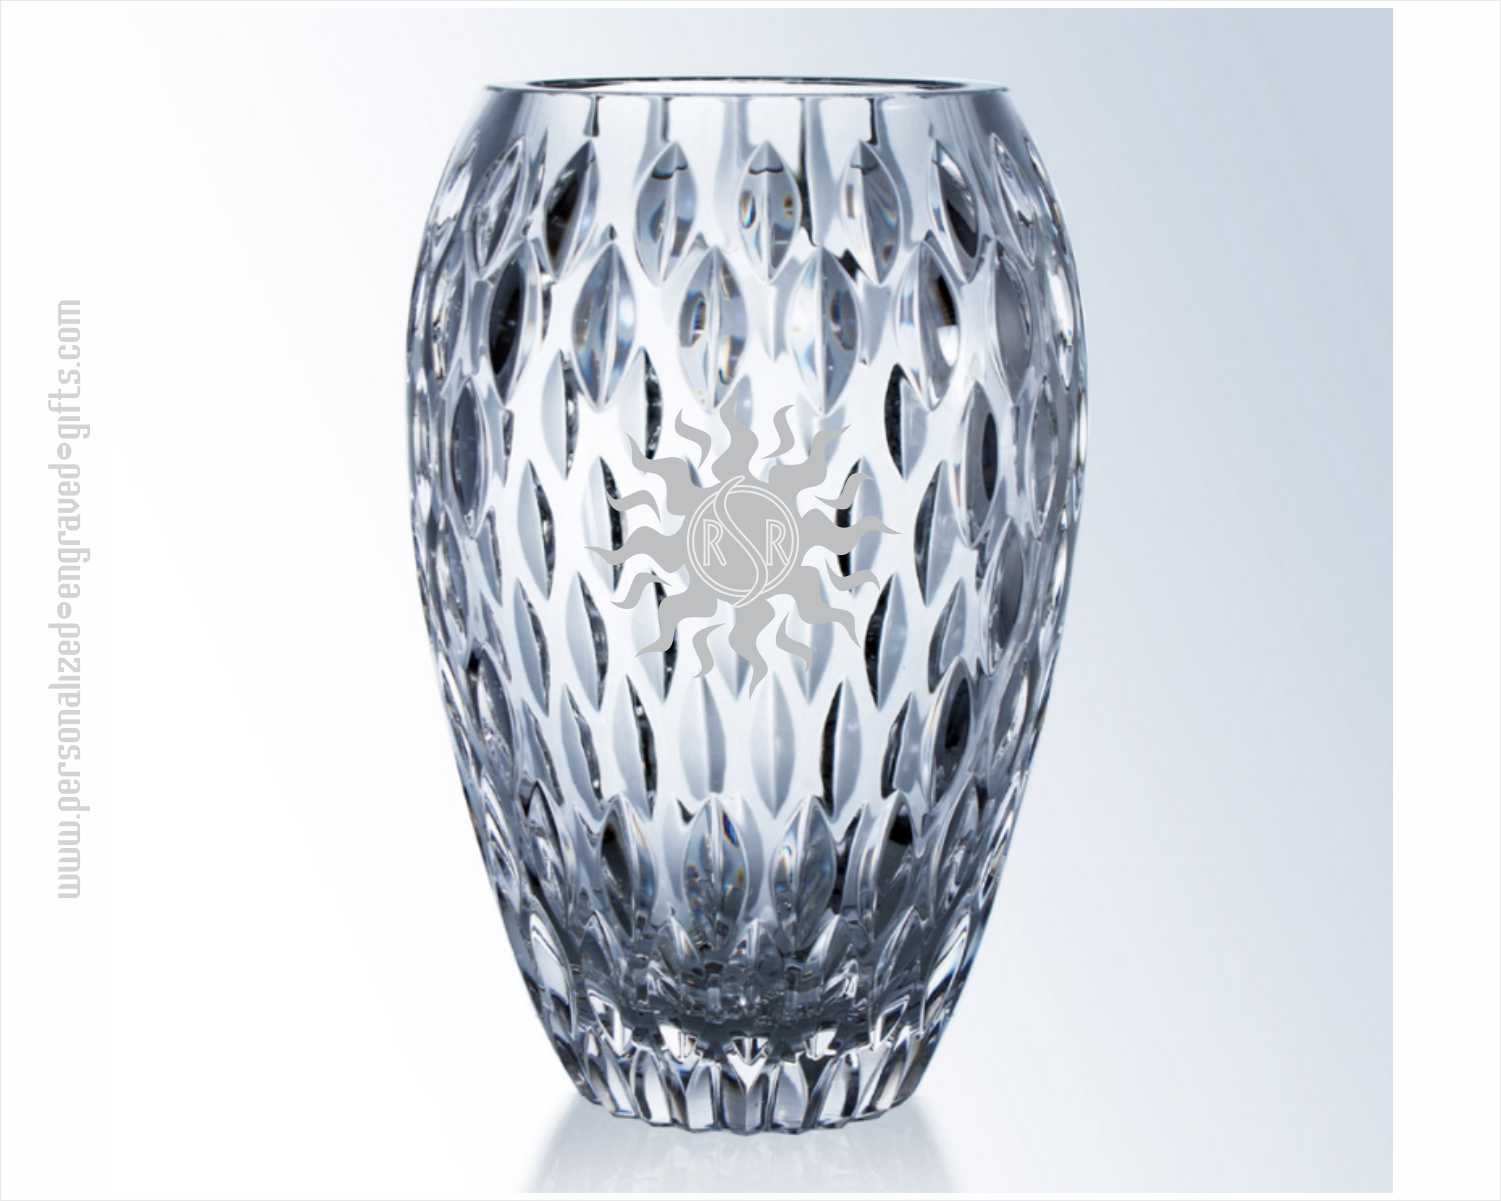 Deep Etched Lead Crystal Award Vases Clear Vulcan